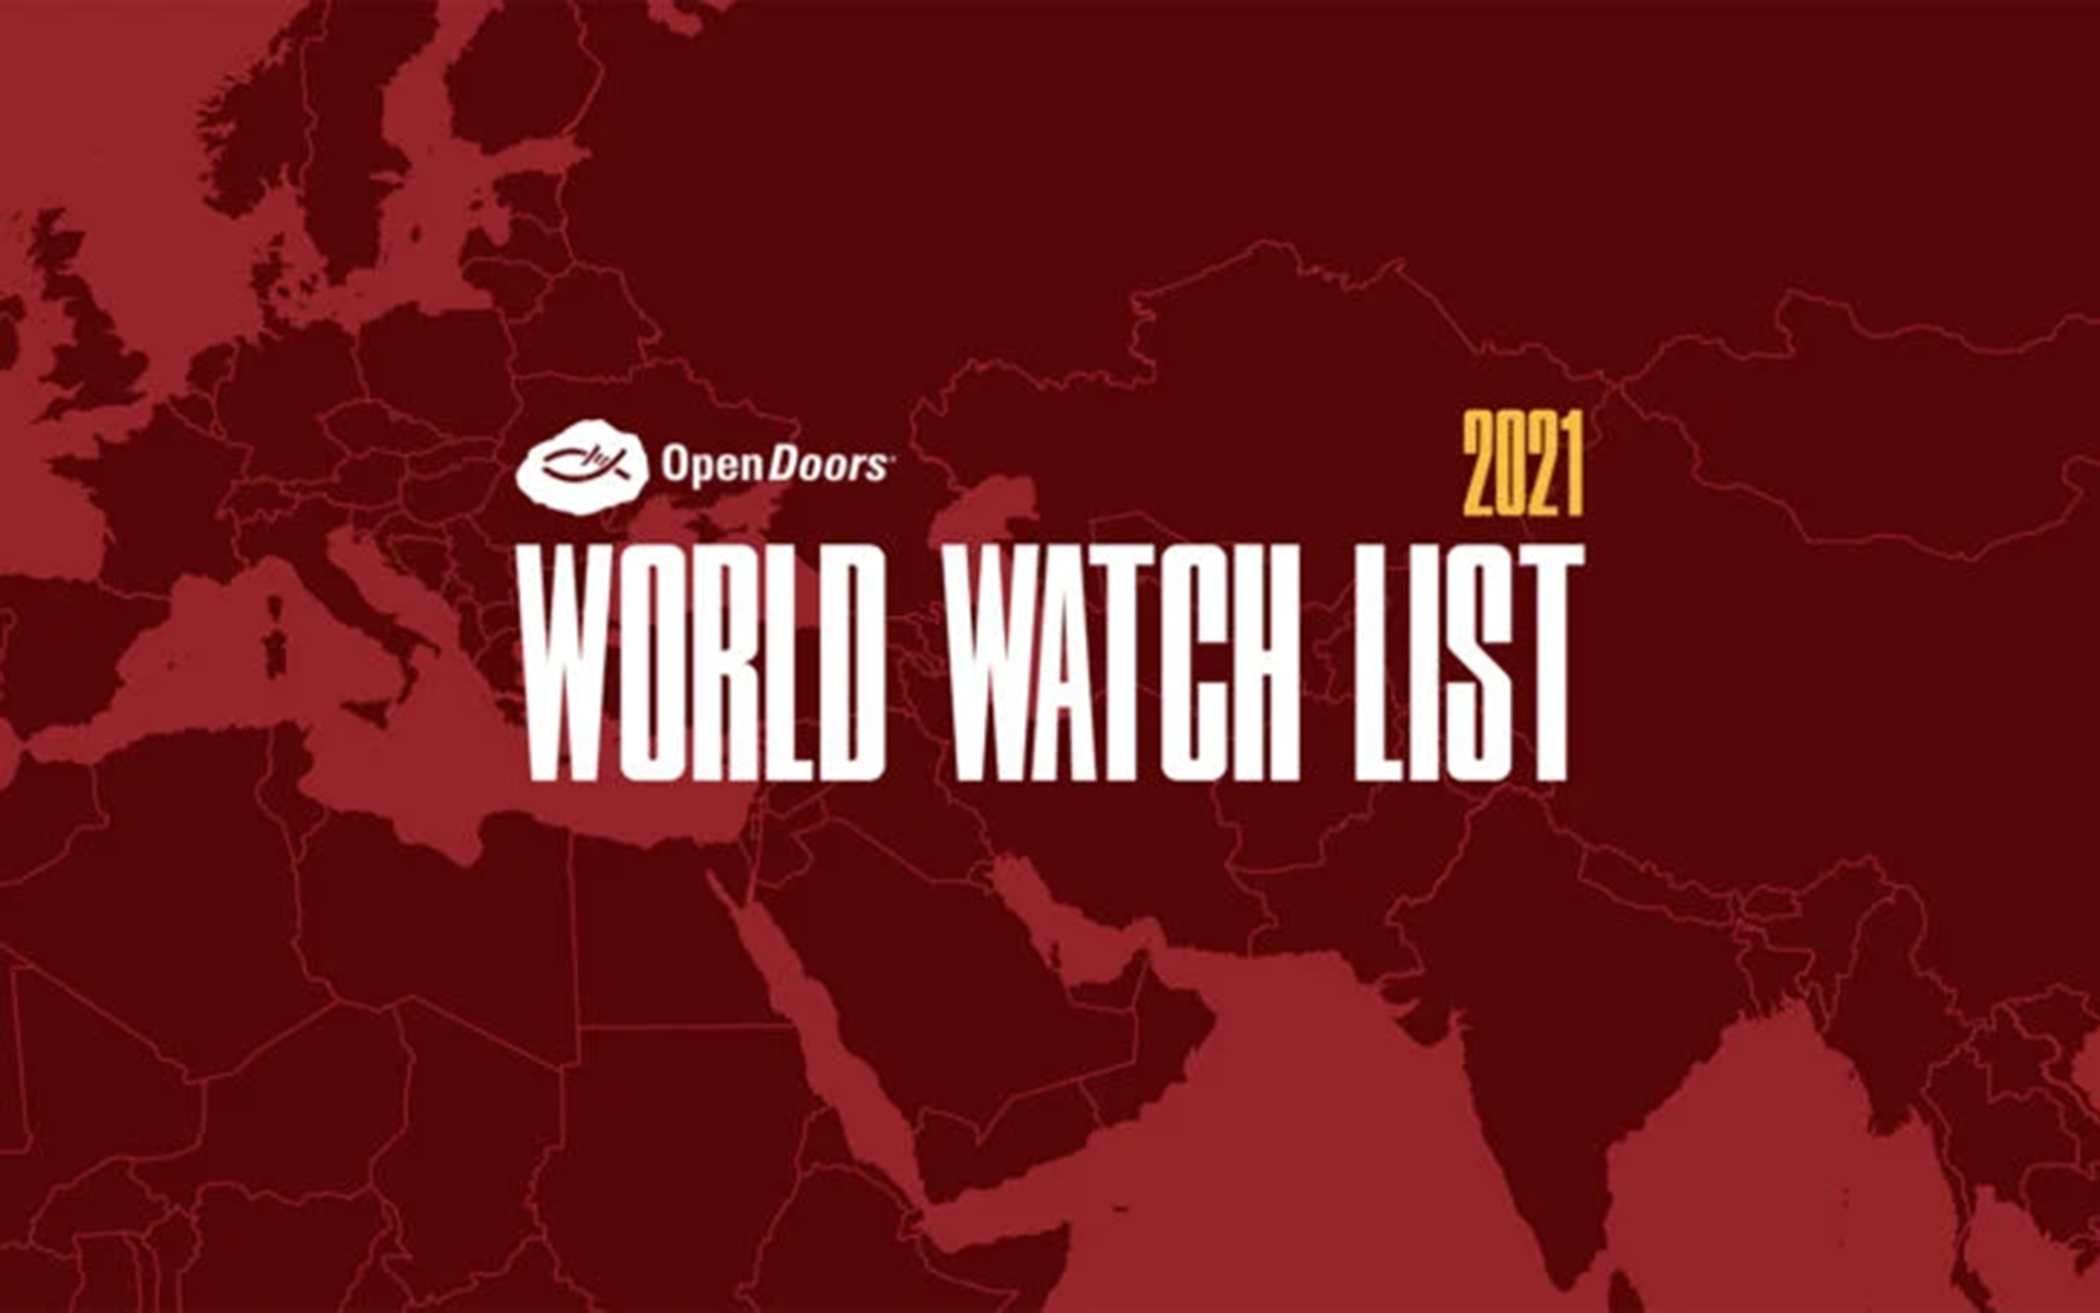 Open Doors' 2021 Watch List Shows Impact of COVID-19